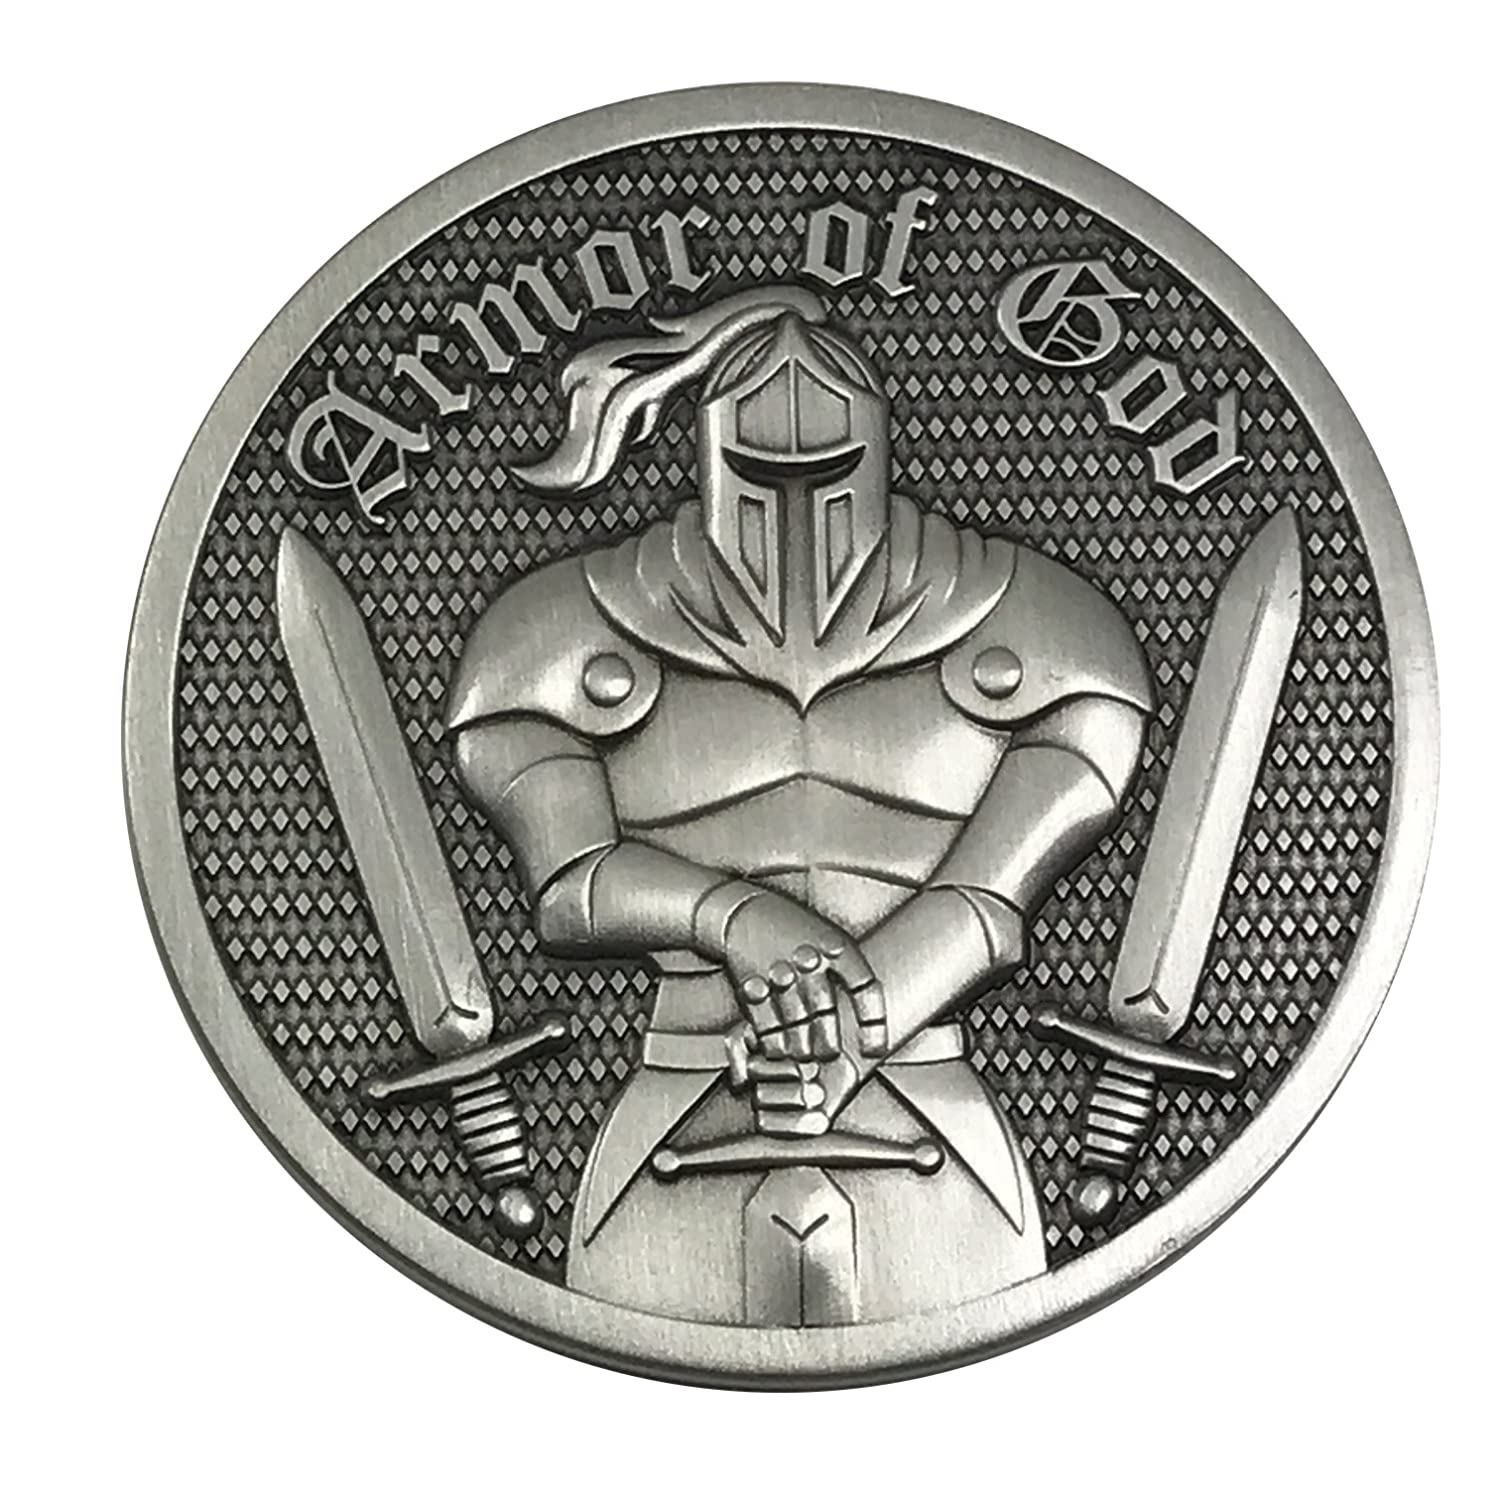 Premium Armor of God - Ephesians 6:11 - 3D Challenge Coin with Antique Silver finish